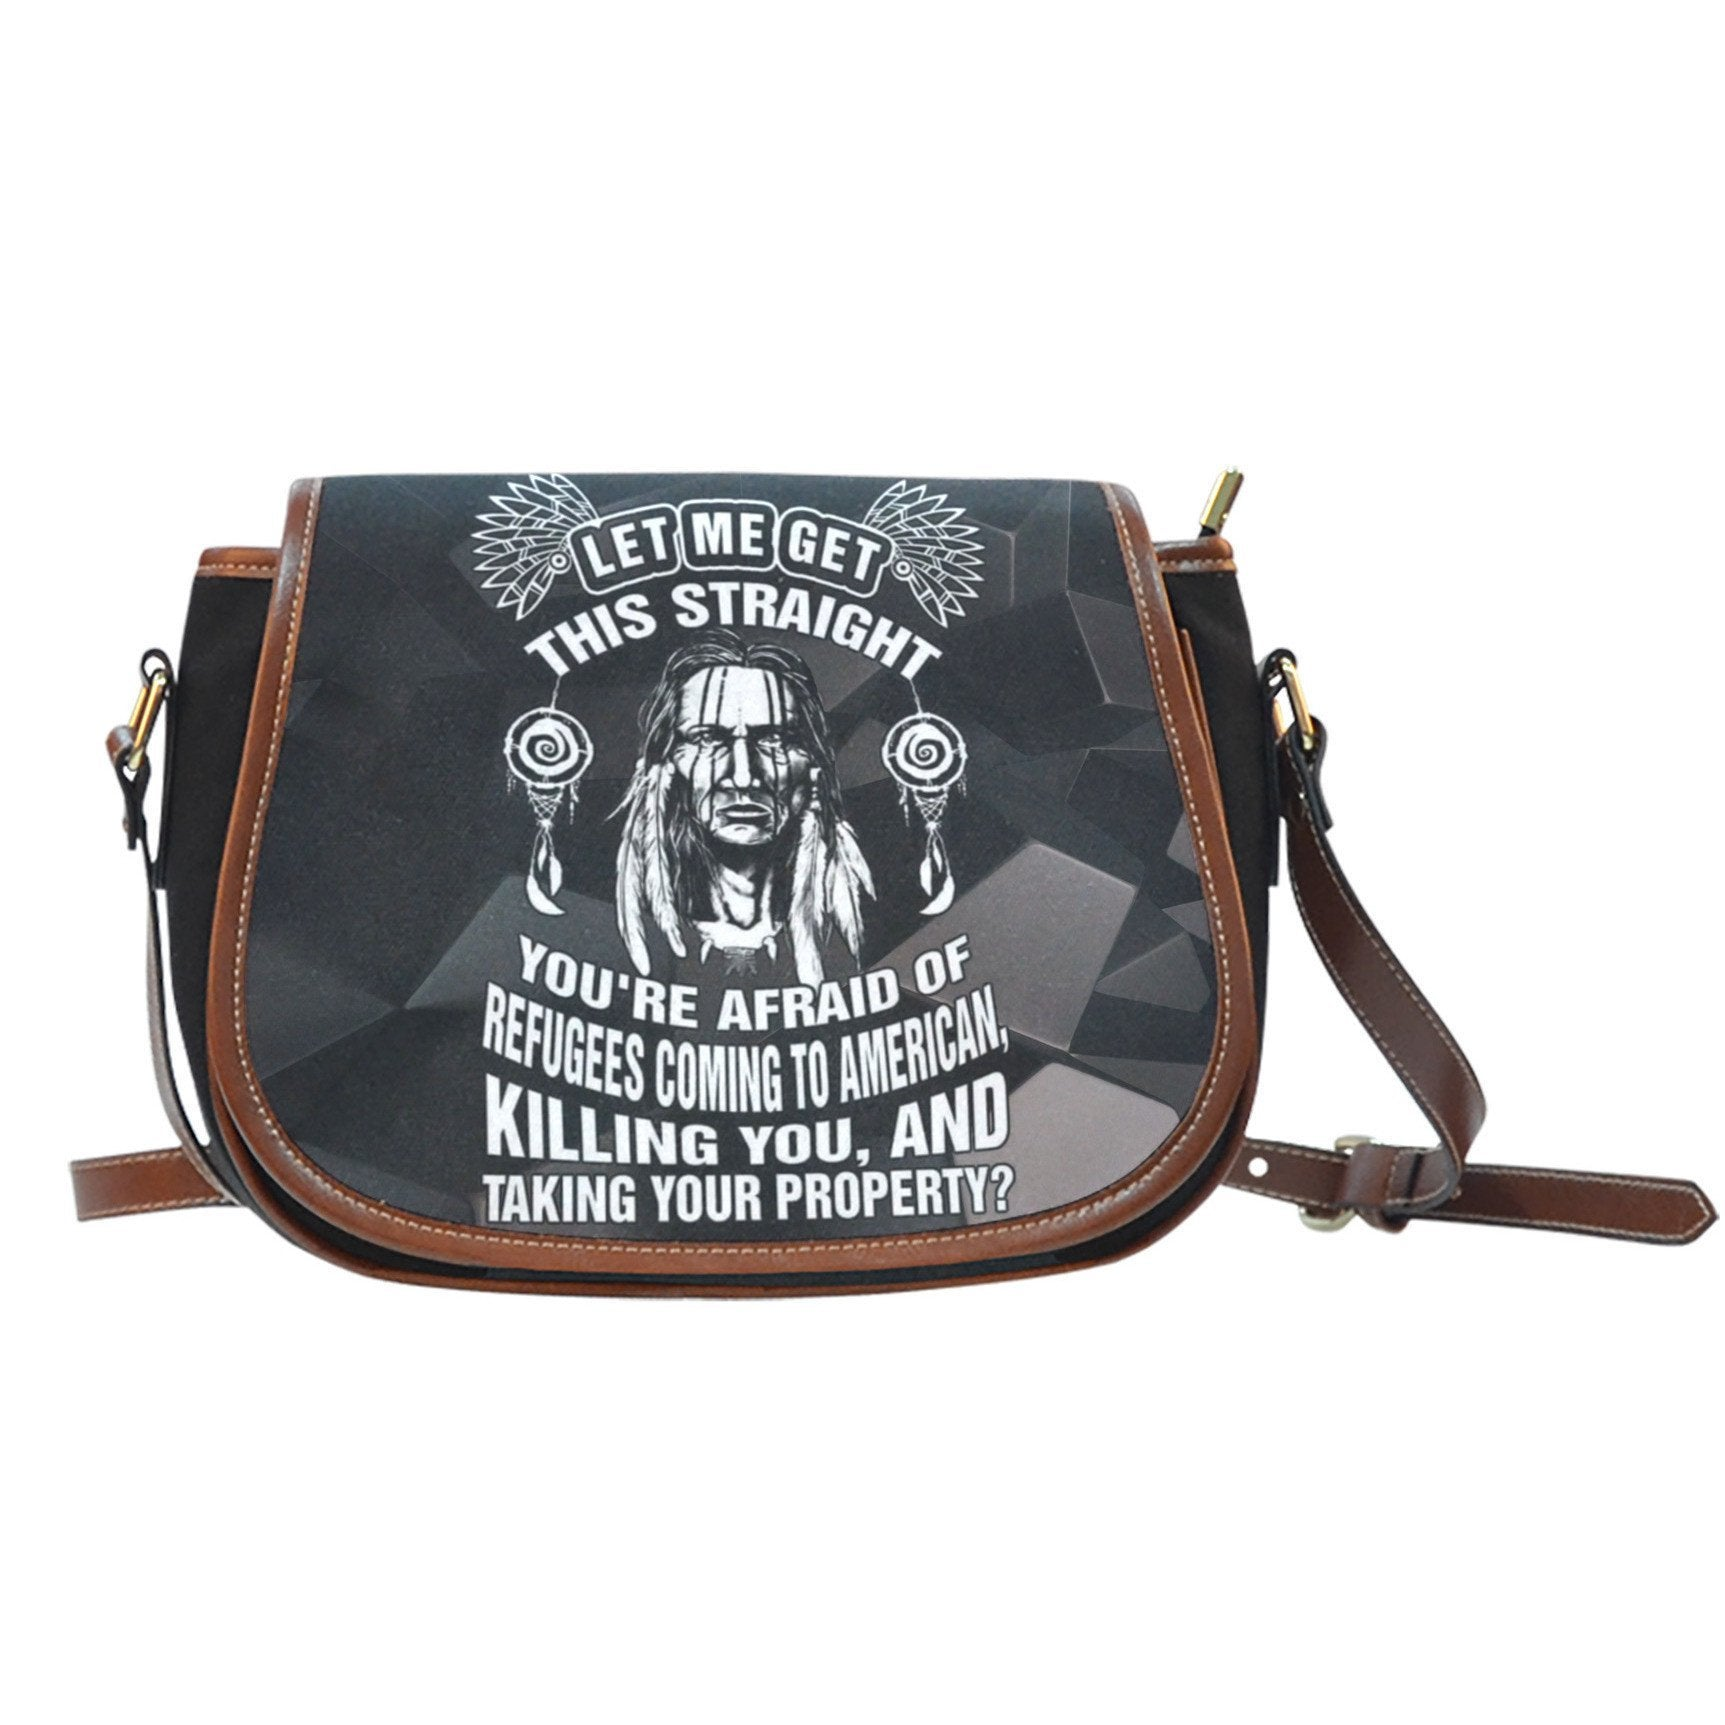 Buy NATIVE AMERICAN  SADDLE BAGS - Familyloves hoodies t-shirt jacket mug cheapest free shipping 50% off